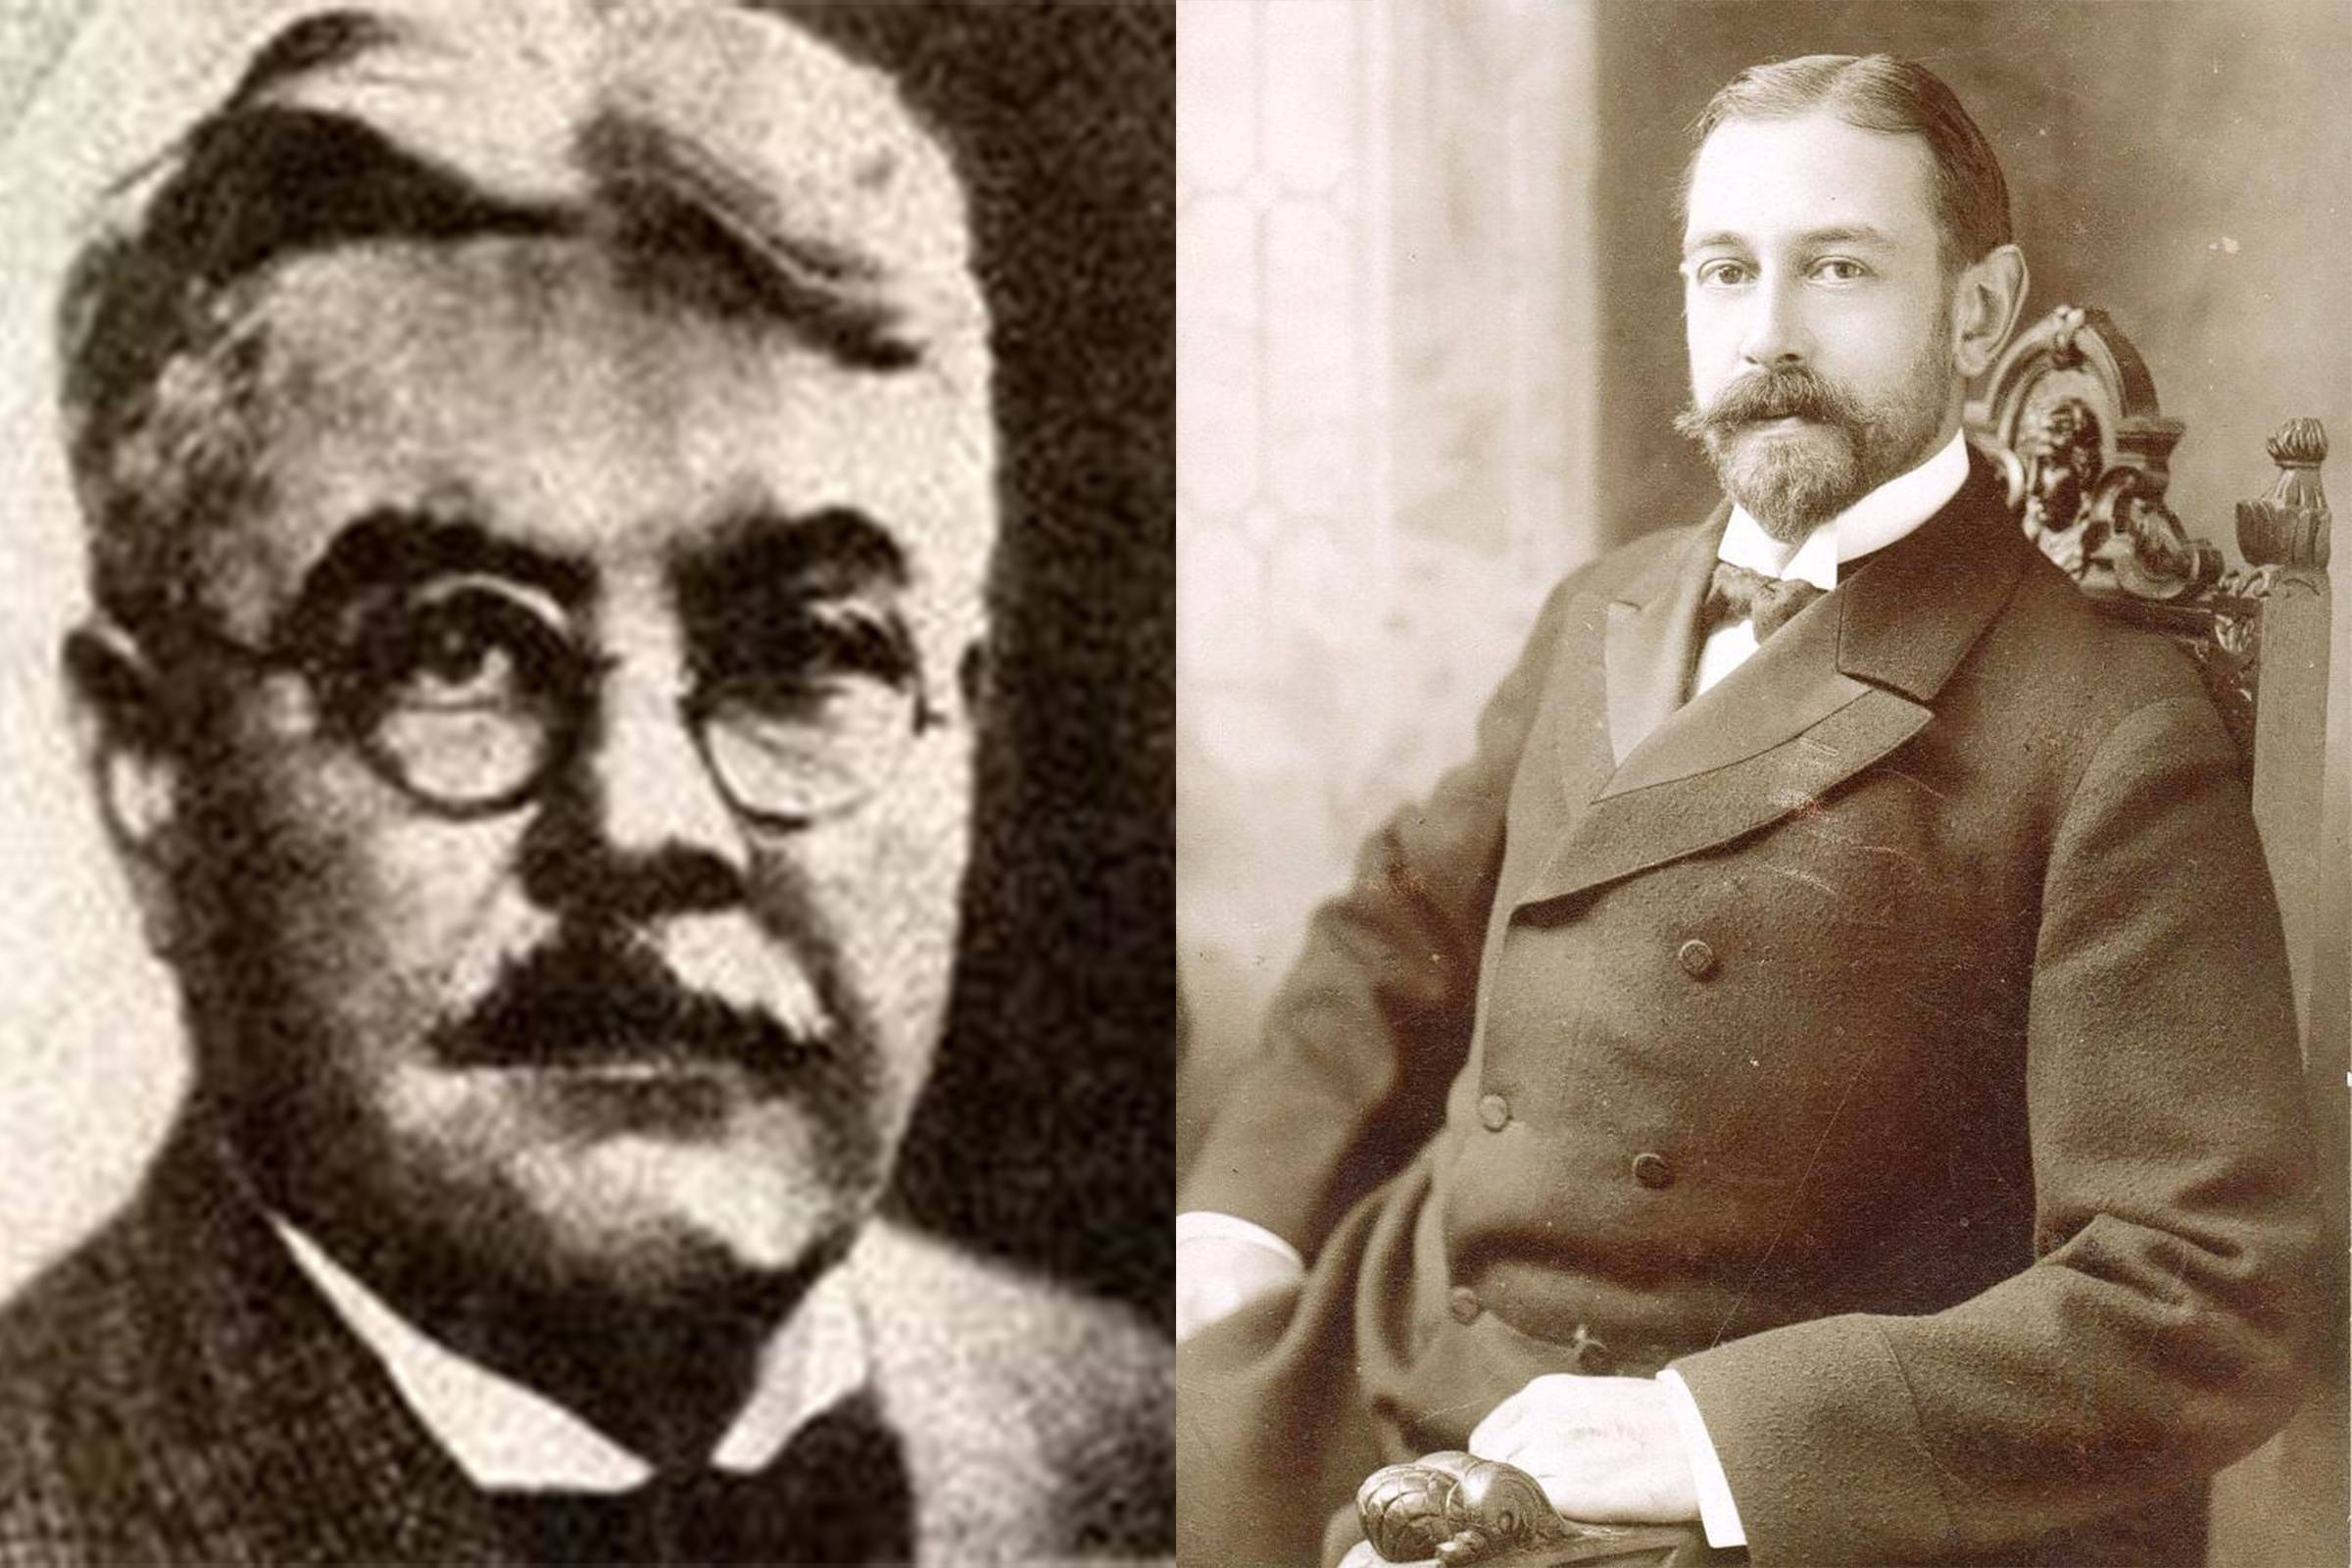 Founders David T. Abercrombie (left) and Ezra Fitch (right)